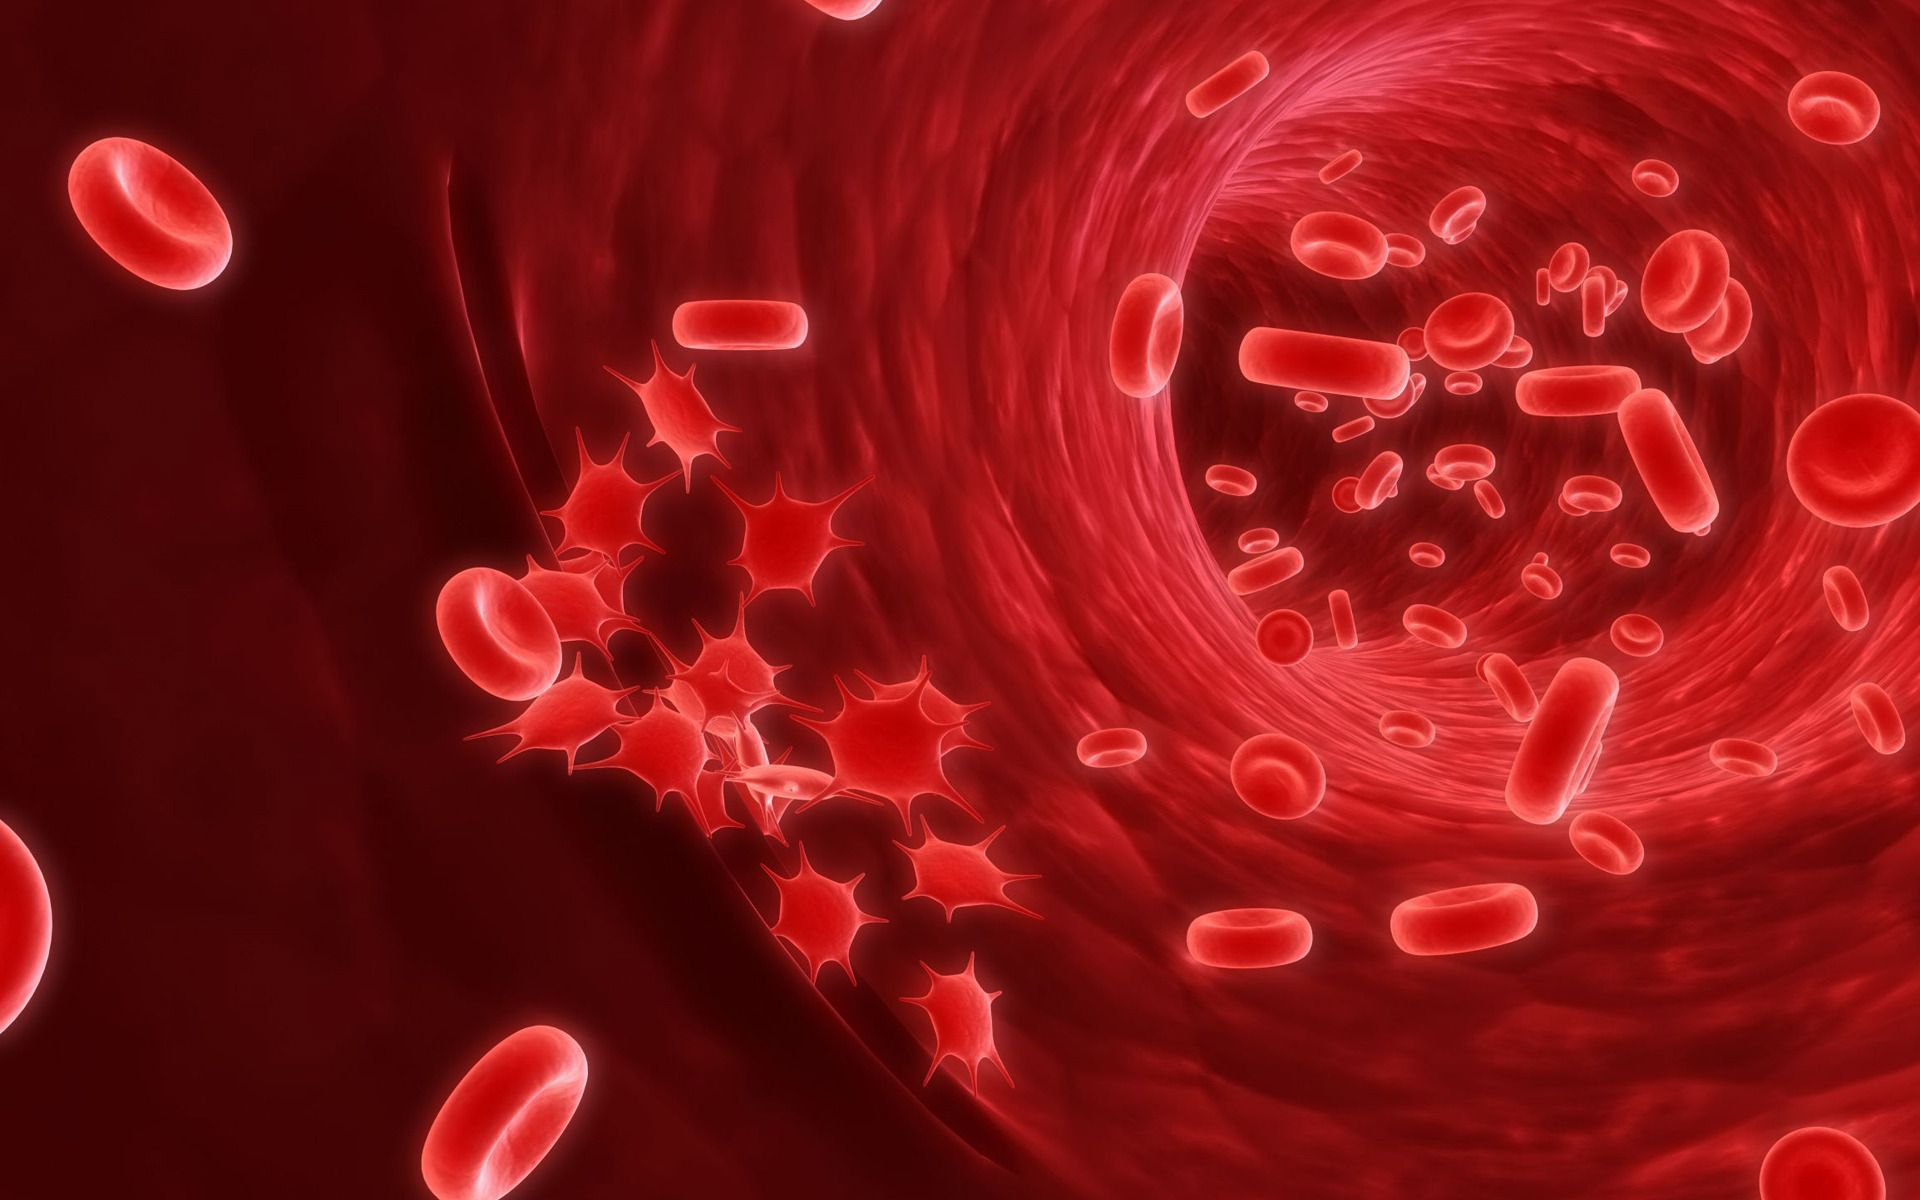 Blood Cells Wallpaper Pack